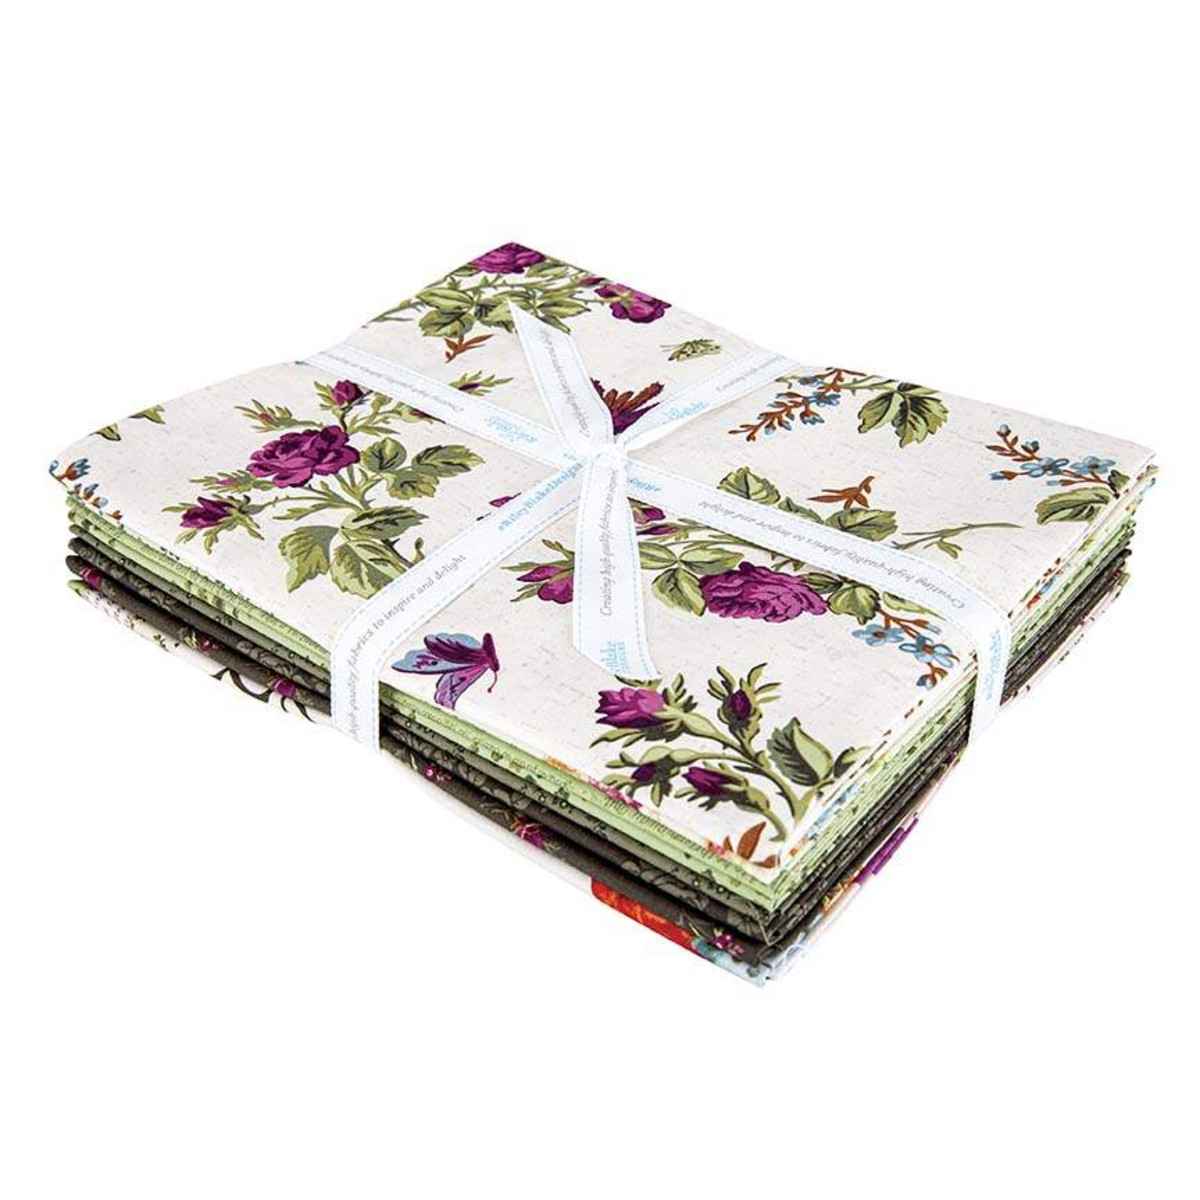 Riley Blake One Yard Bundle - Anne of Green Gables Parchment